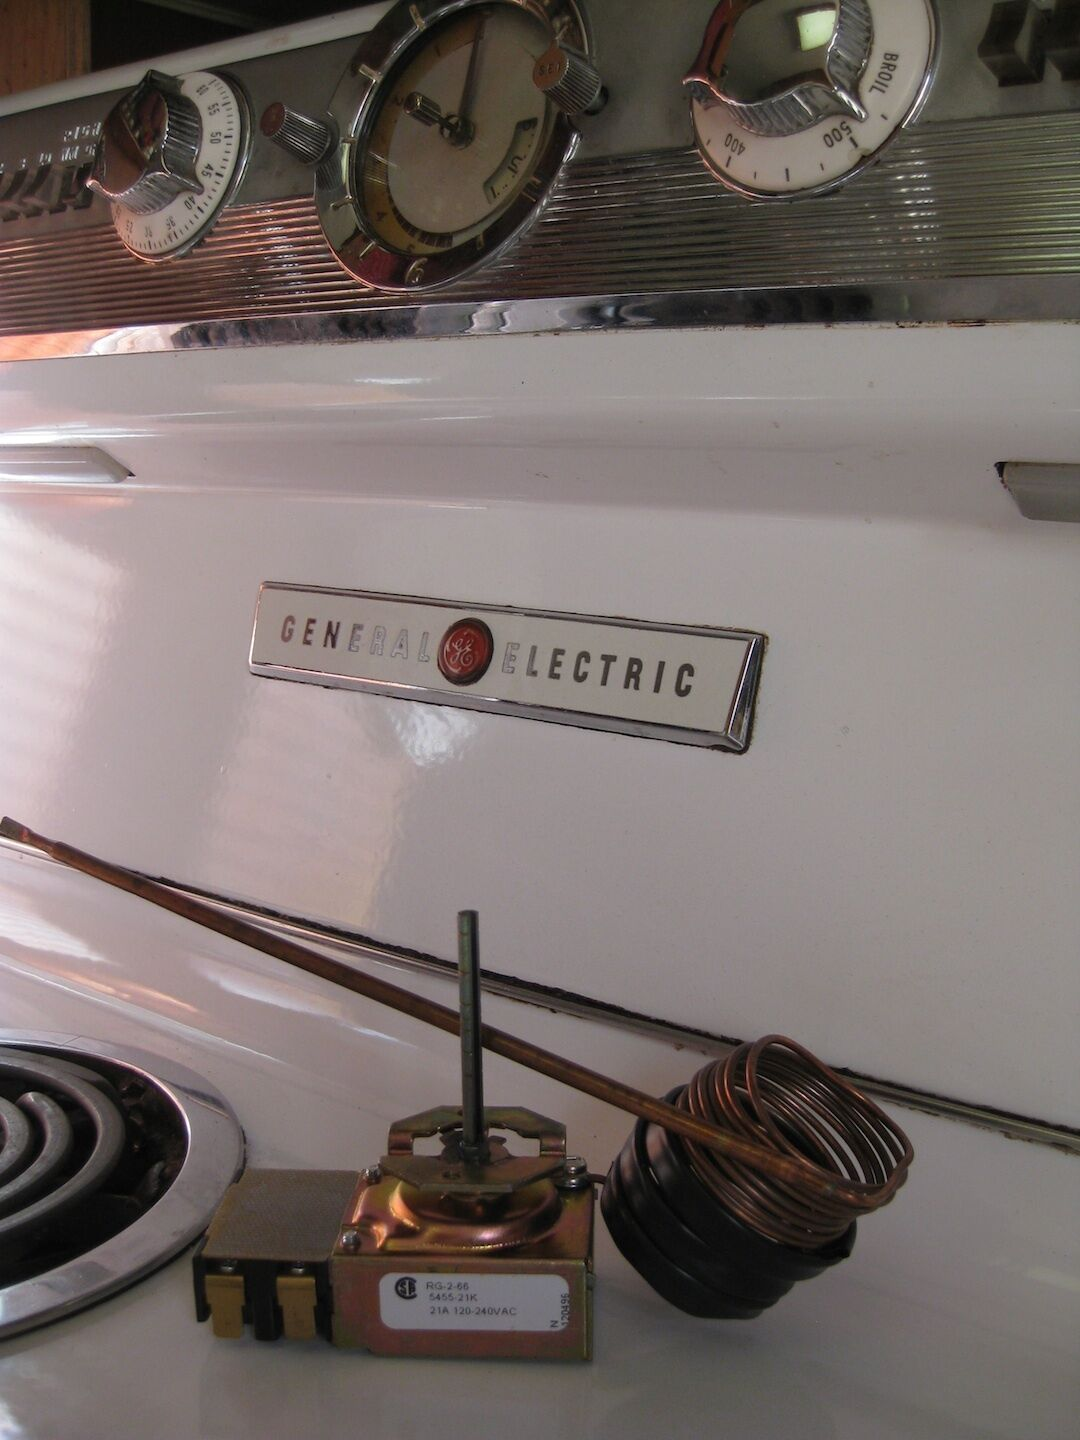 GE HOTPOINT General Electric STOVE RANGE VINTAGE OVEN THERMOSTAT ...